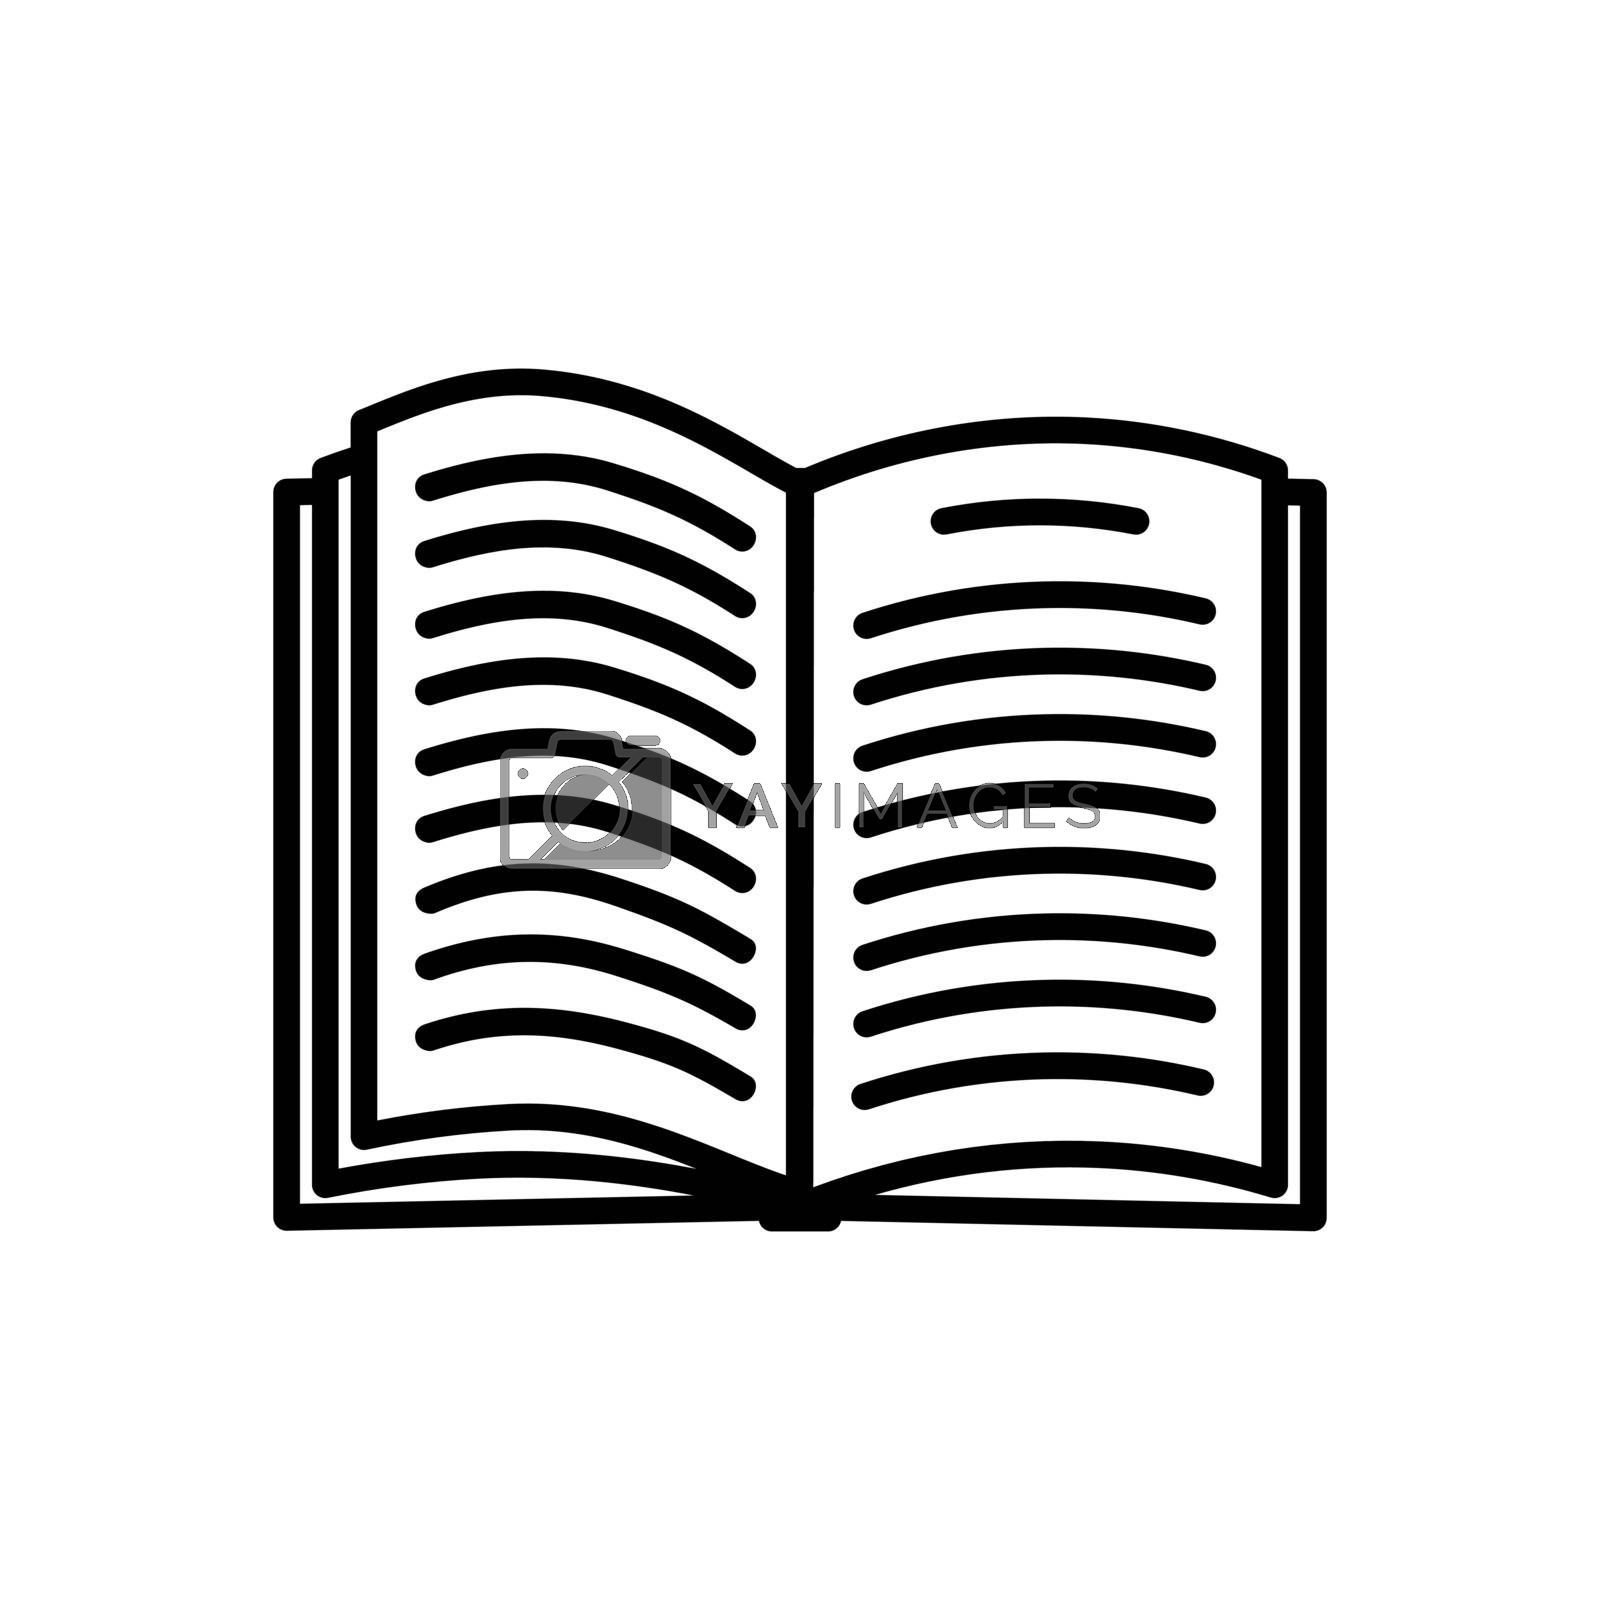 Book icon isolated on white background by veronawinner